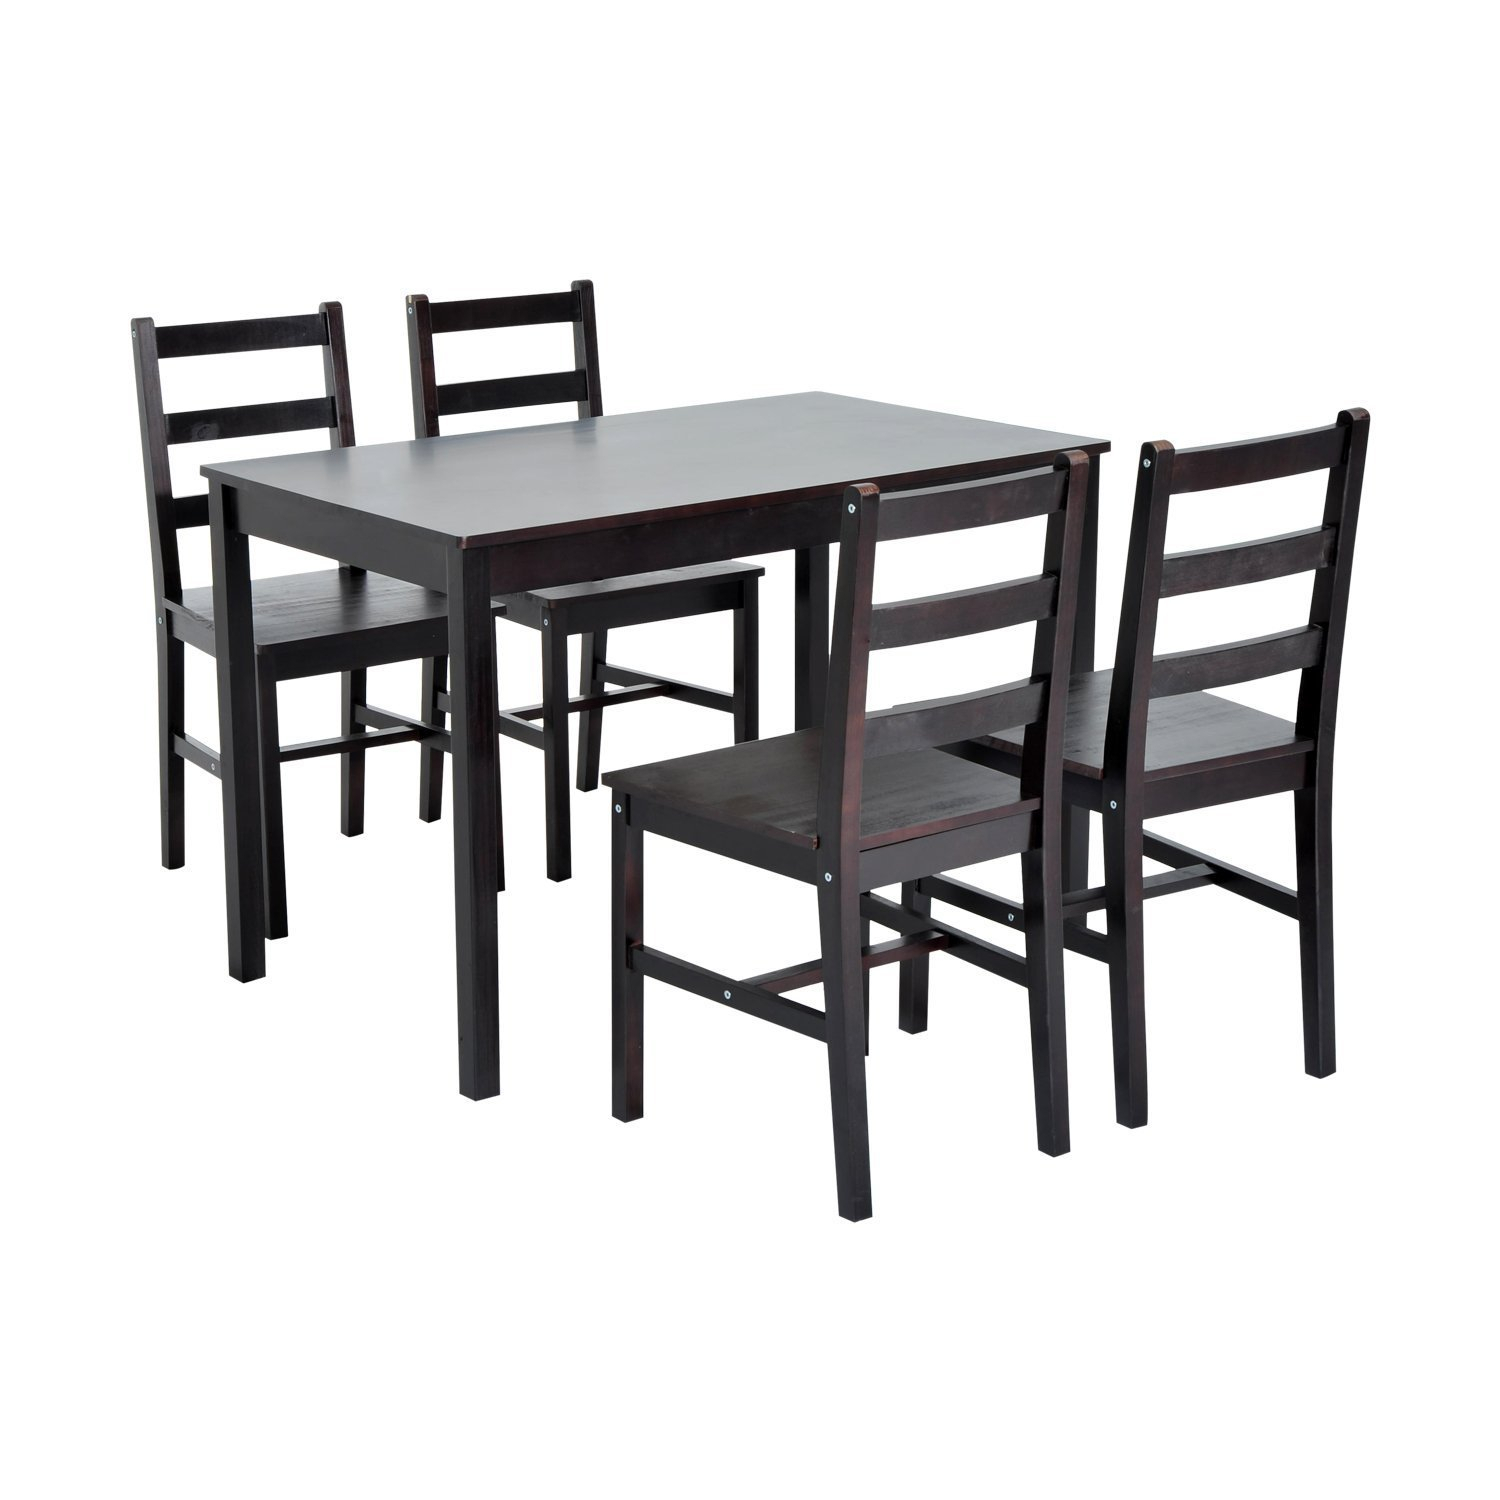 Yedinak 5 Piece Solid Wood Dining Set Throughout Most Popular Sundberg 5 Piece Solid Wood Dining Sets (Photo 2 of 20)